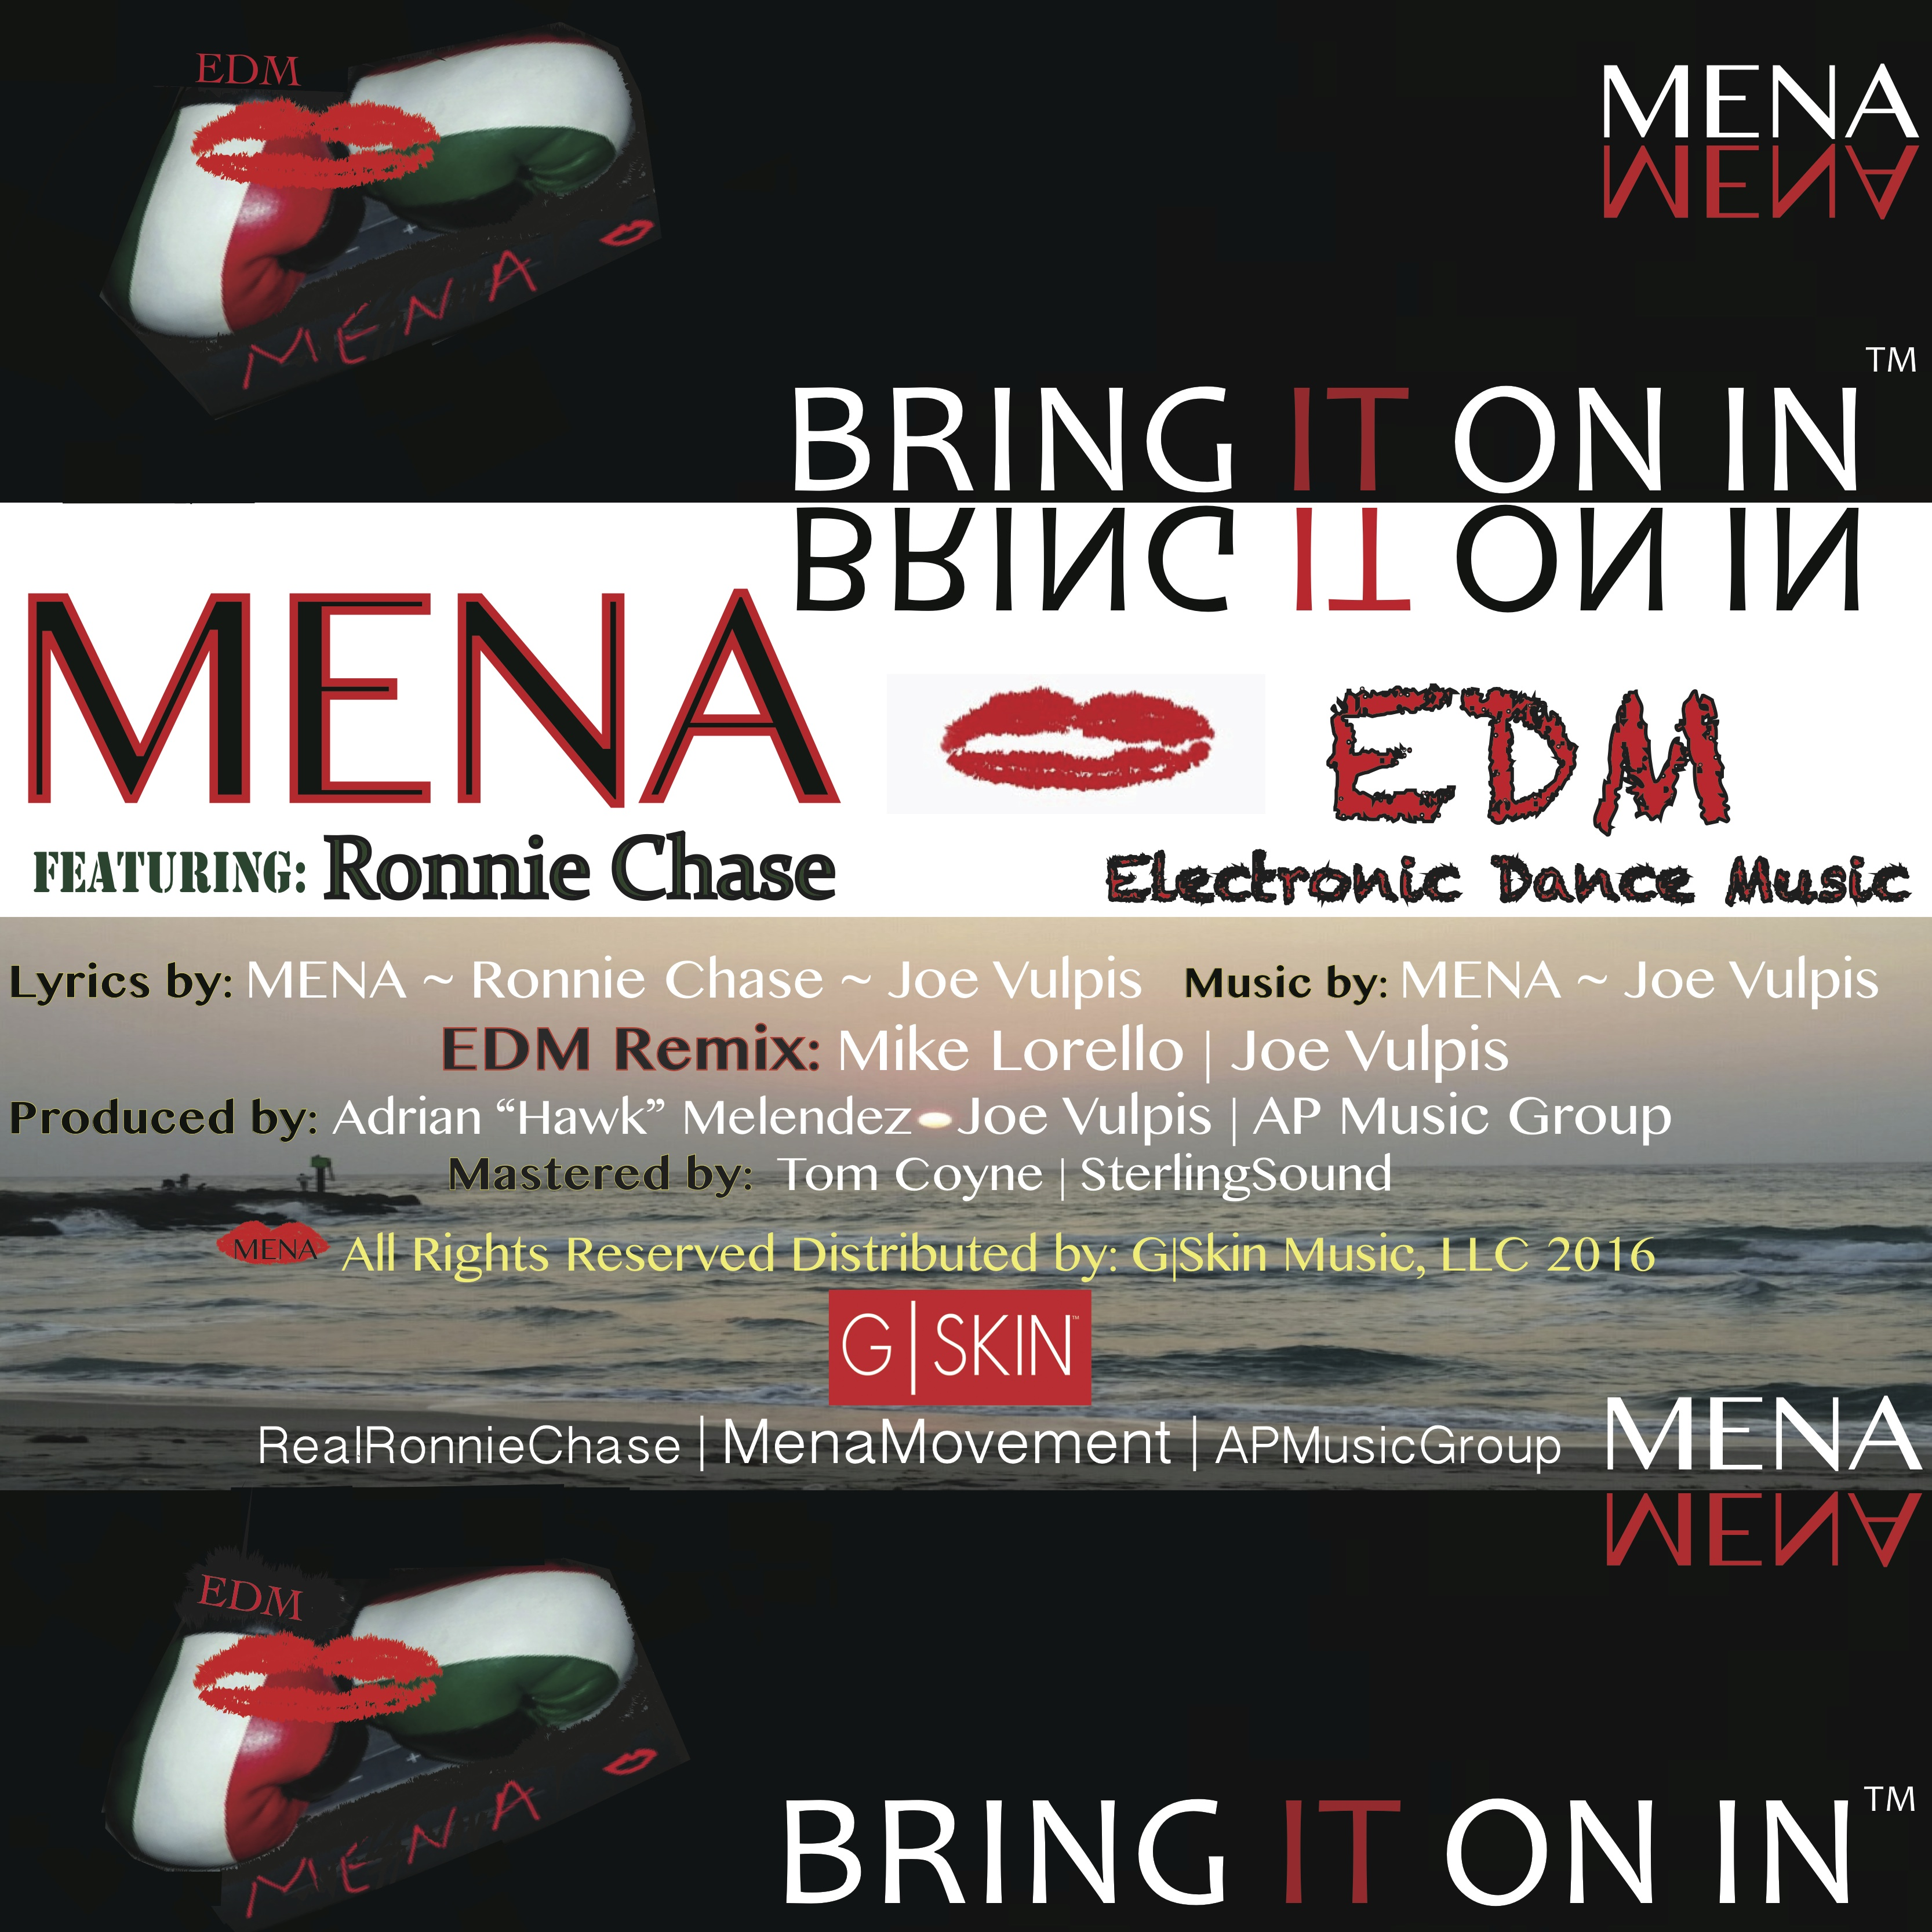 EDM Bring It On In ~MENA featuring Ronnie Chase Joe Vulpis Mike Lorello